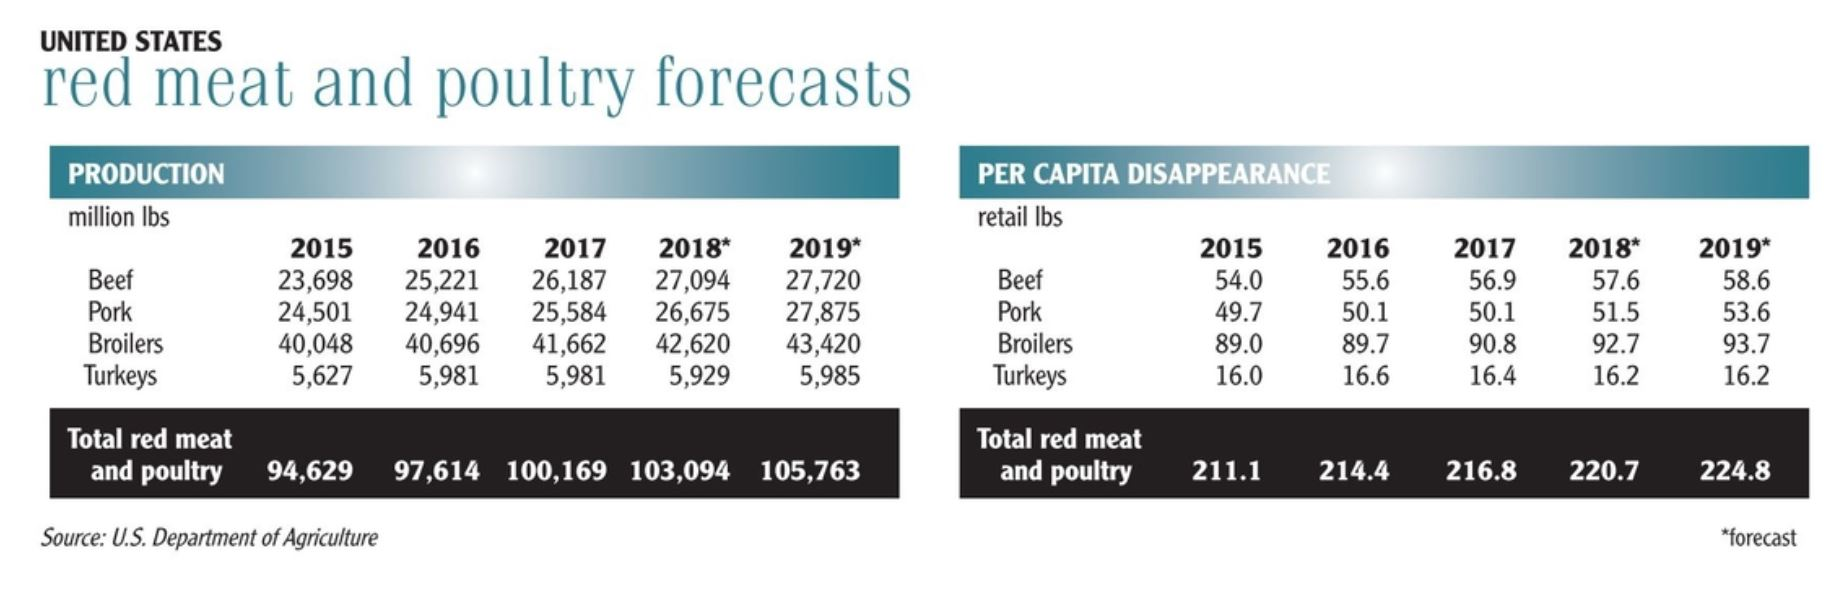 Red meat and poultry forecasts chart